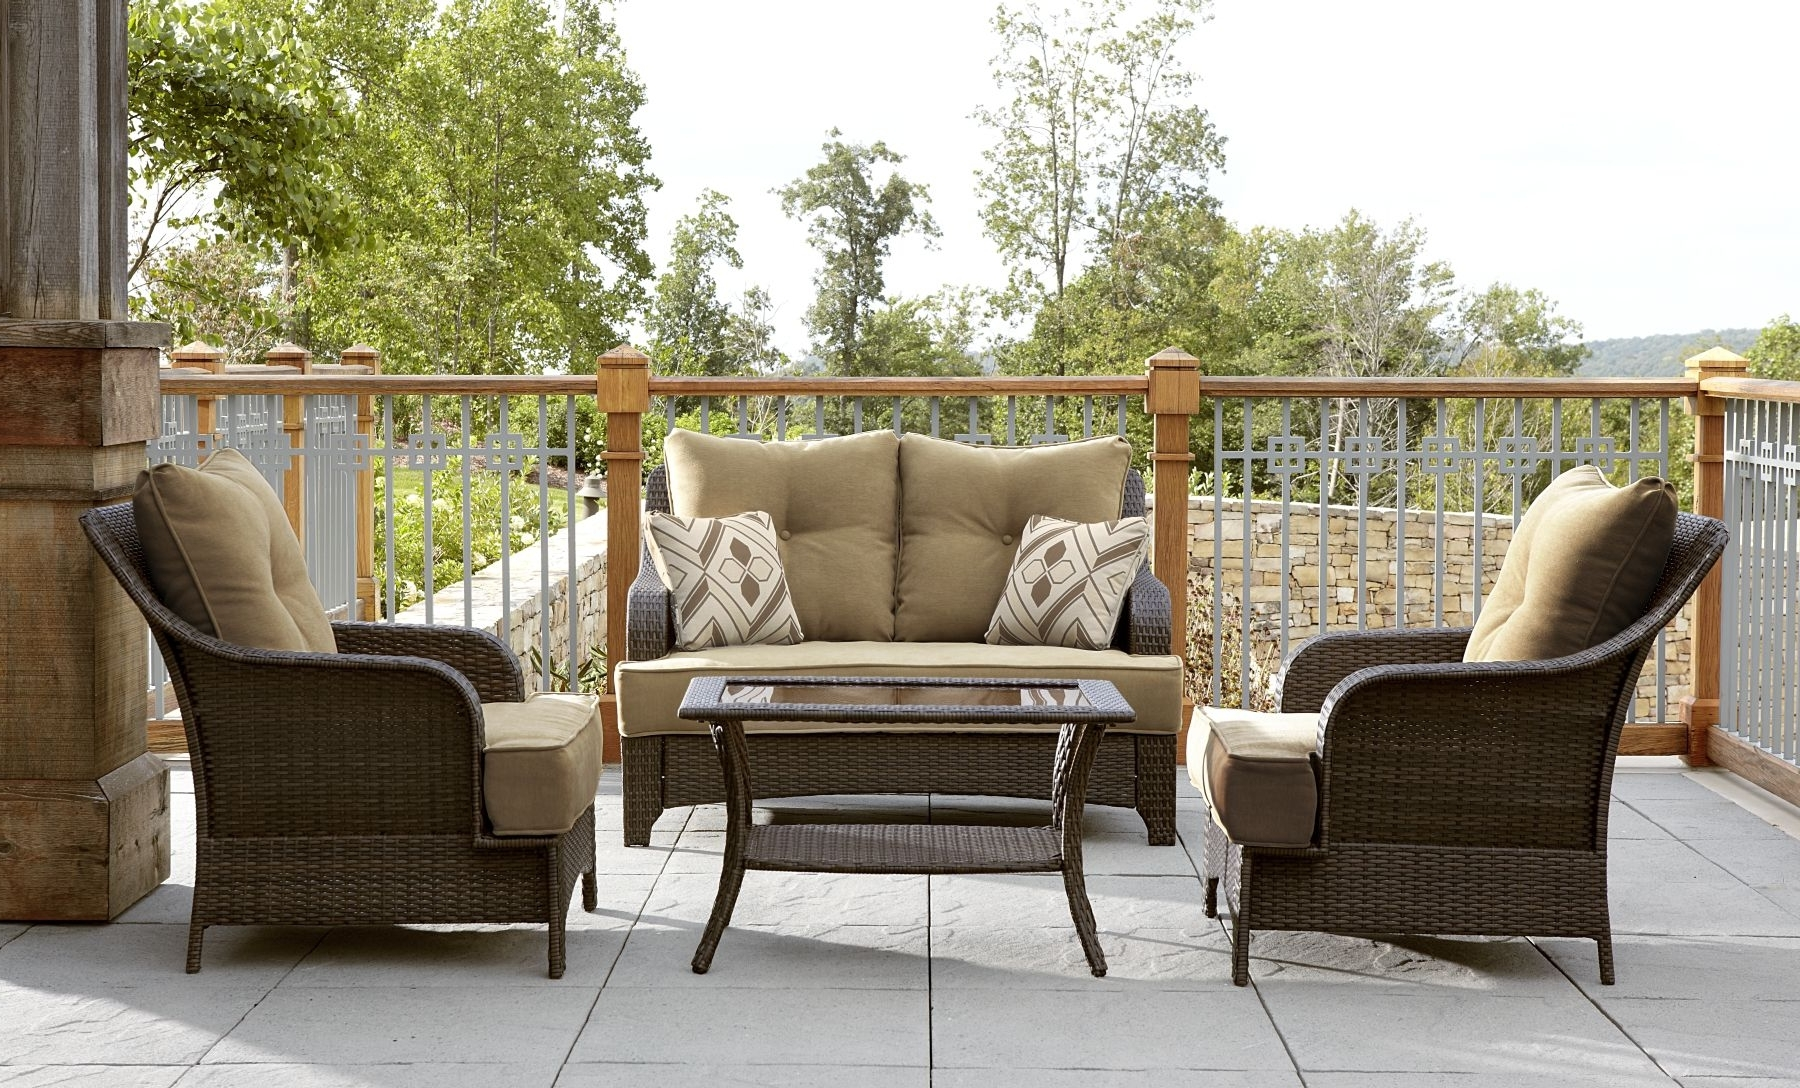 Lazy Boy Patio Conversation Sets Pertaining To 2019 Patio : Lazy Boy Patio Furniture Cushion Replacements Covers (View 5 of 20)